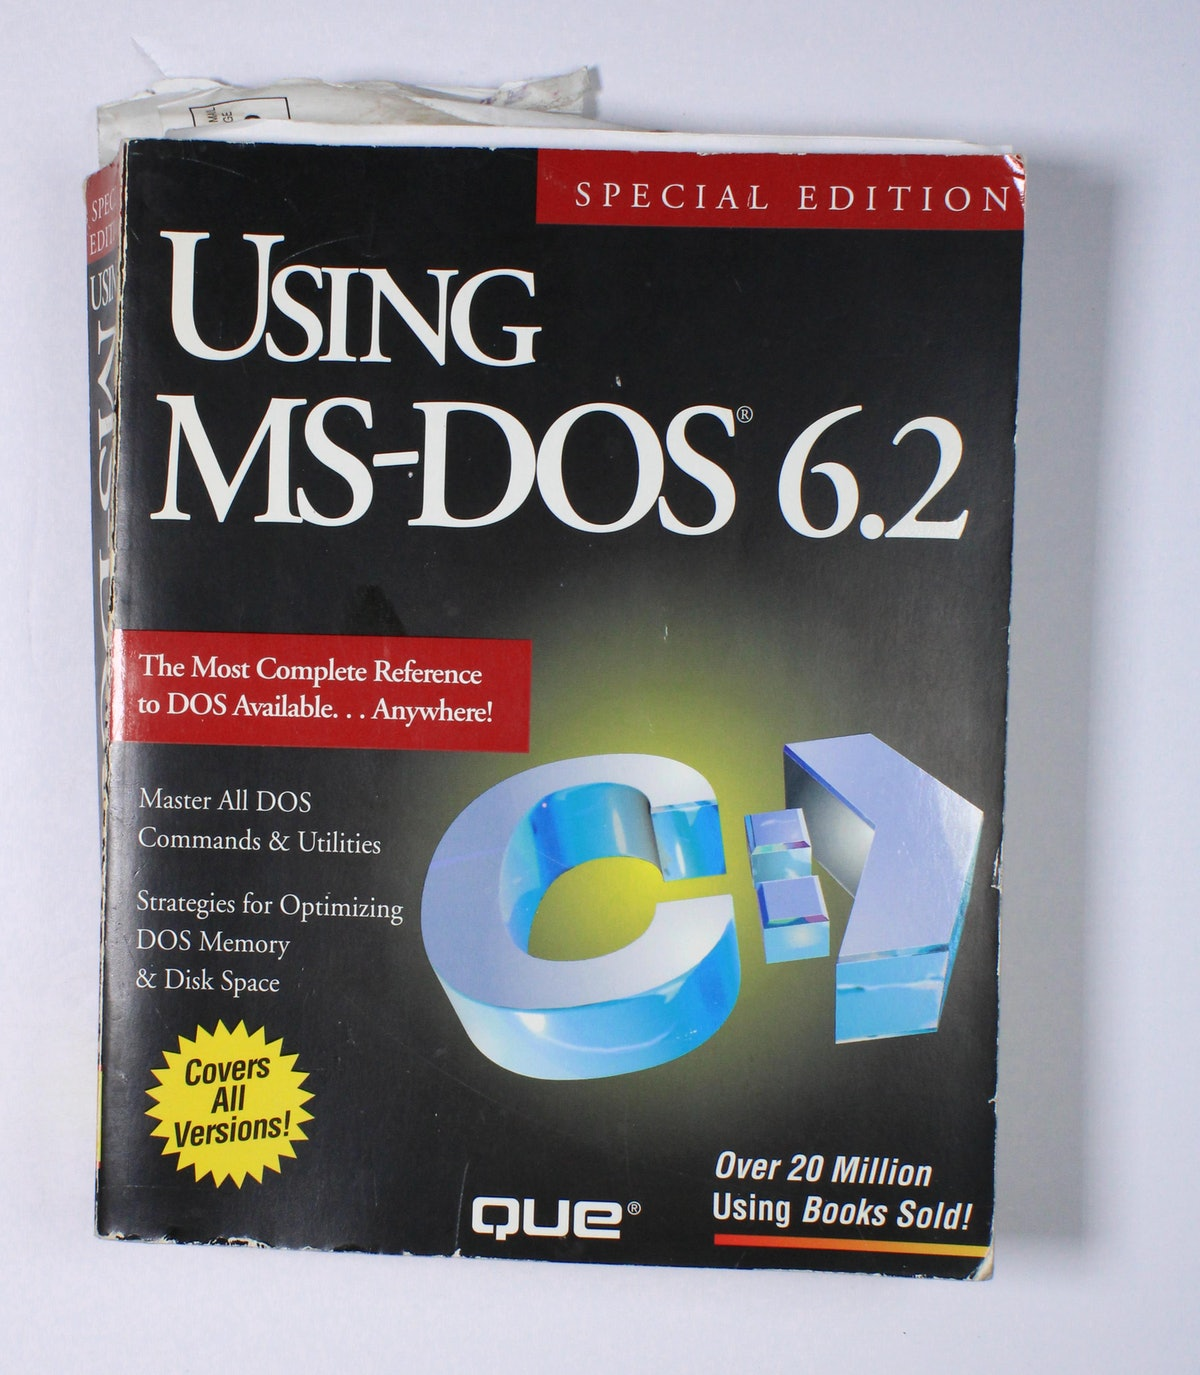 Using MS-DOC 6.2